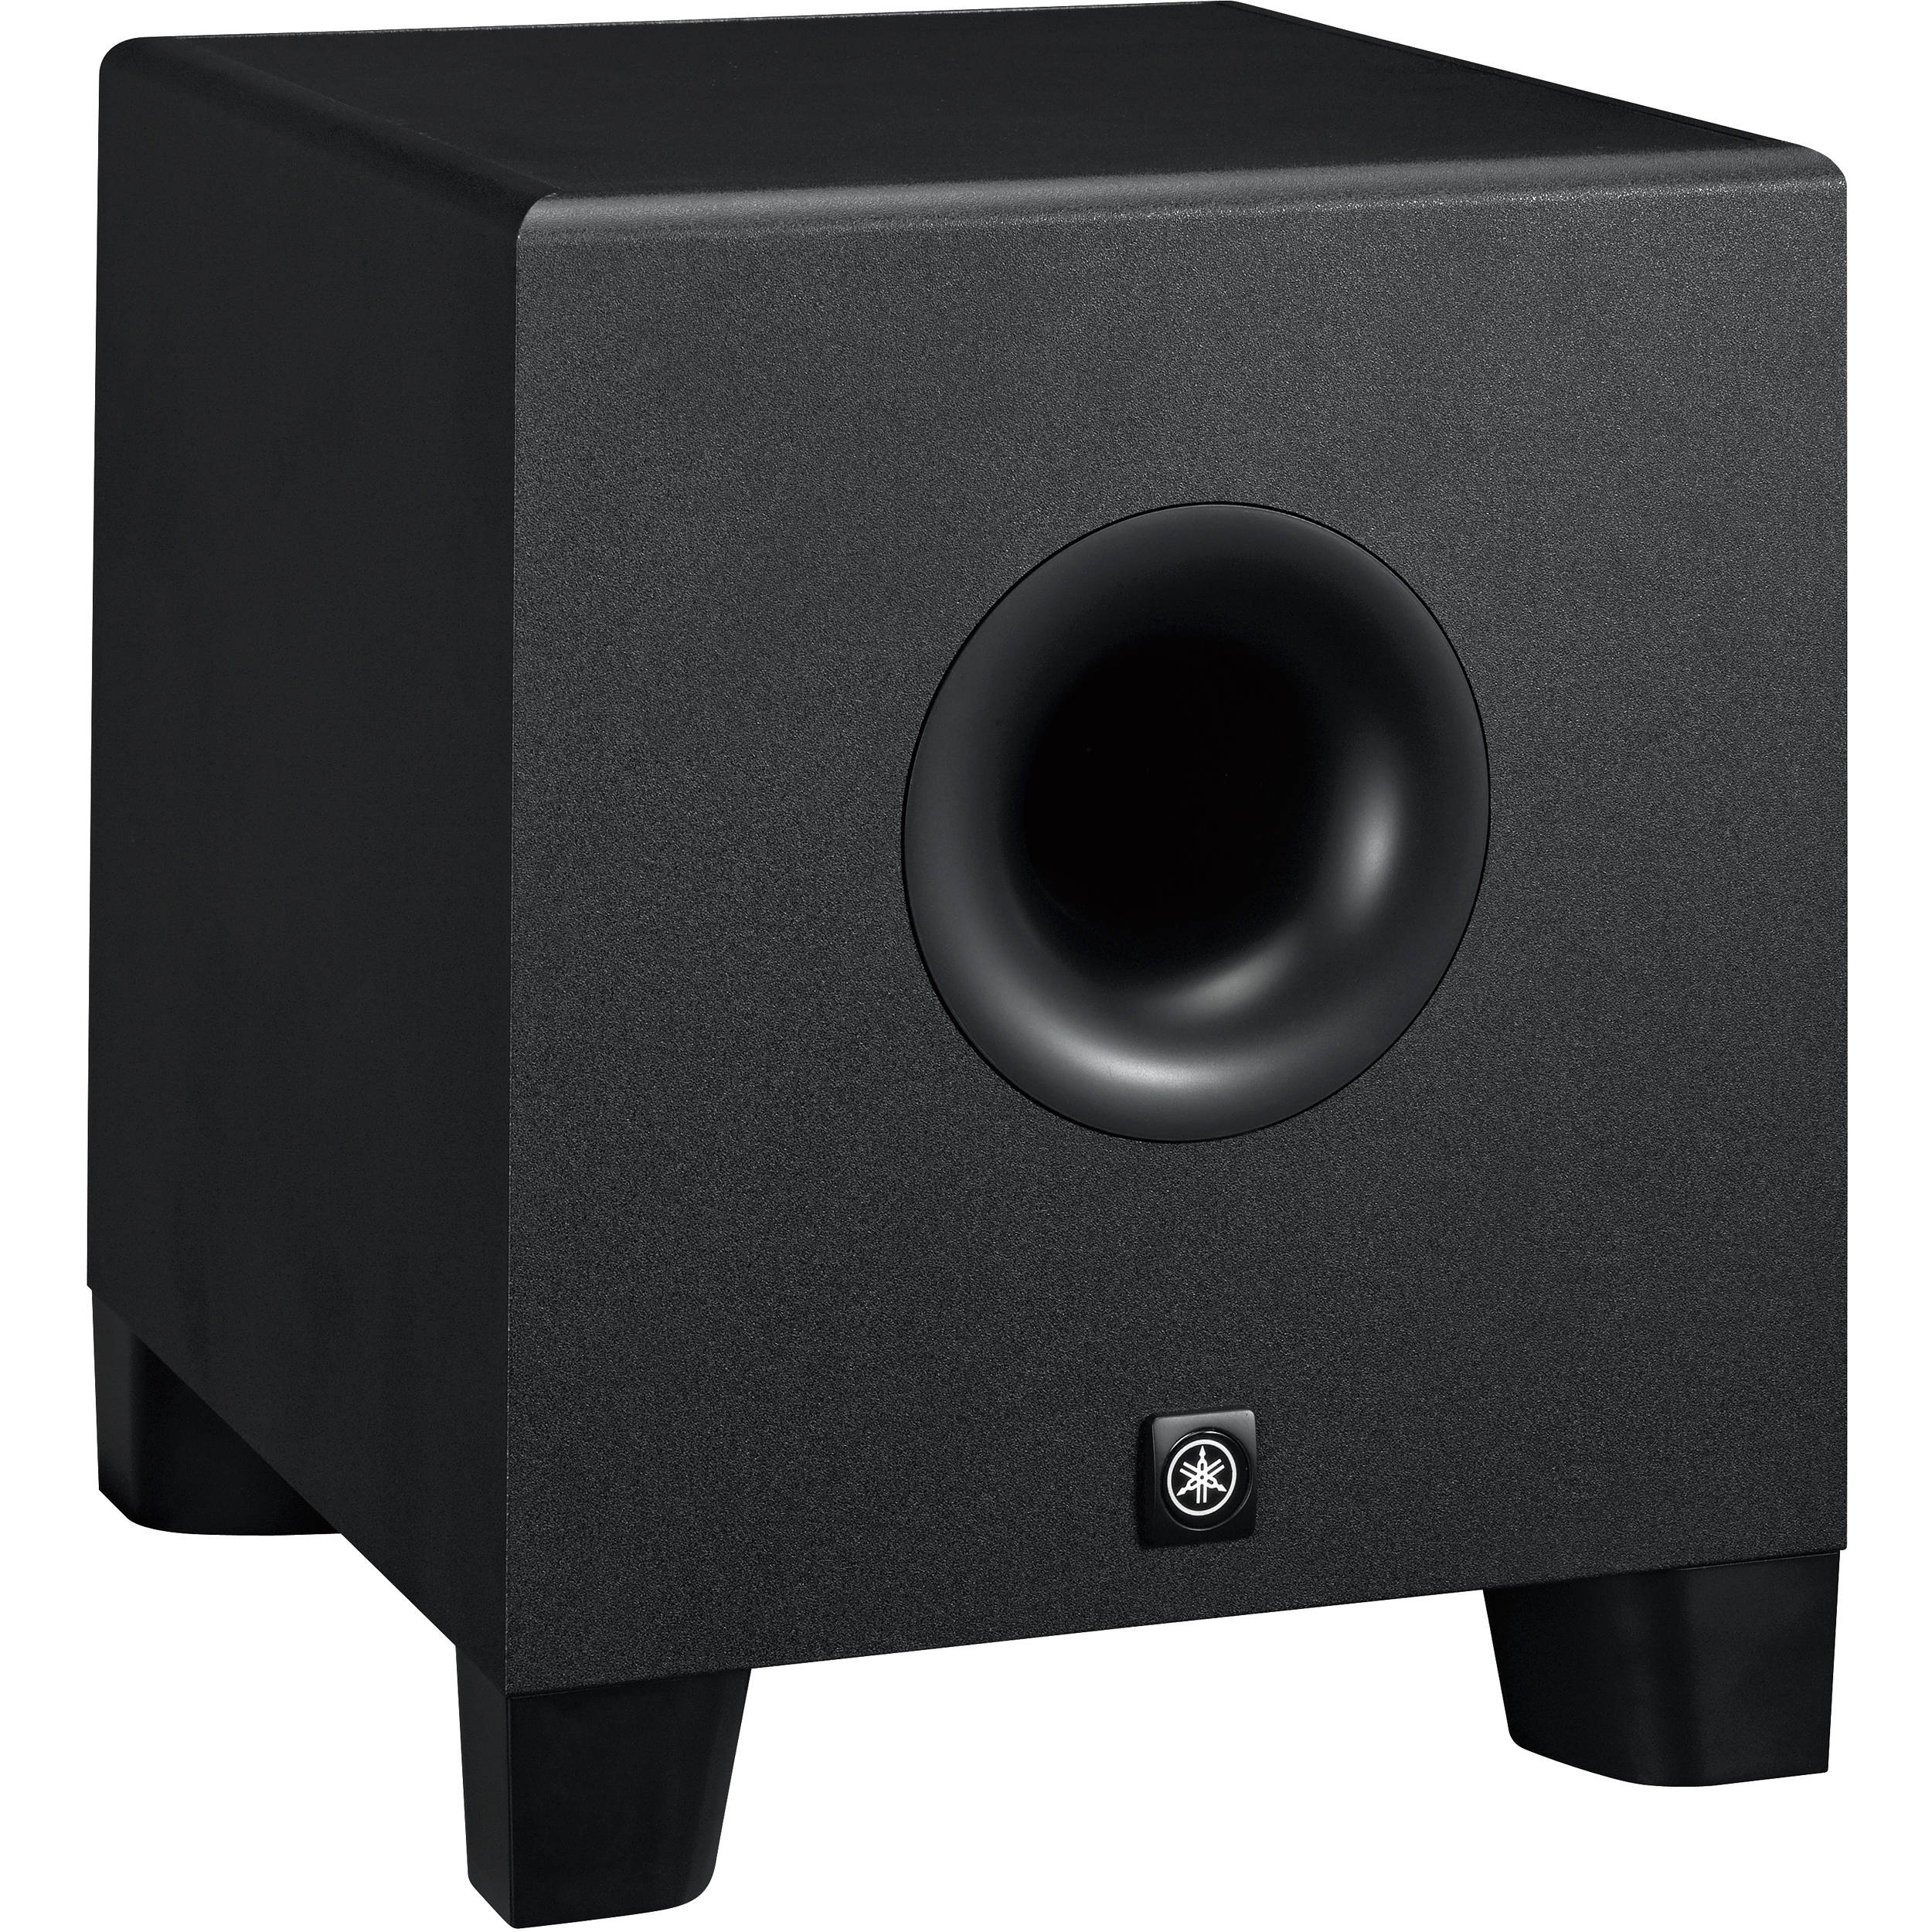 Yamaha HS8S Powered Studio Subwoofer 8 3 XLR to XLR Cables